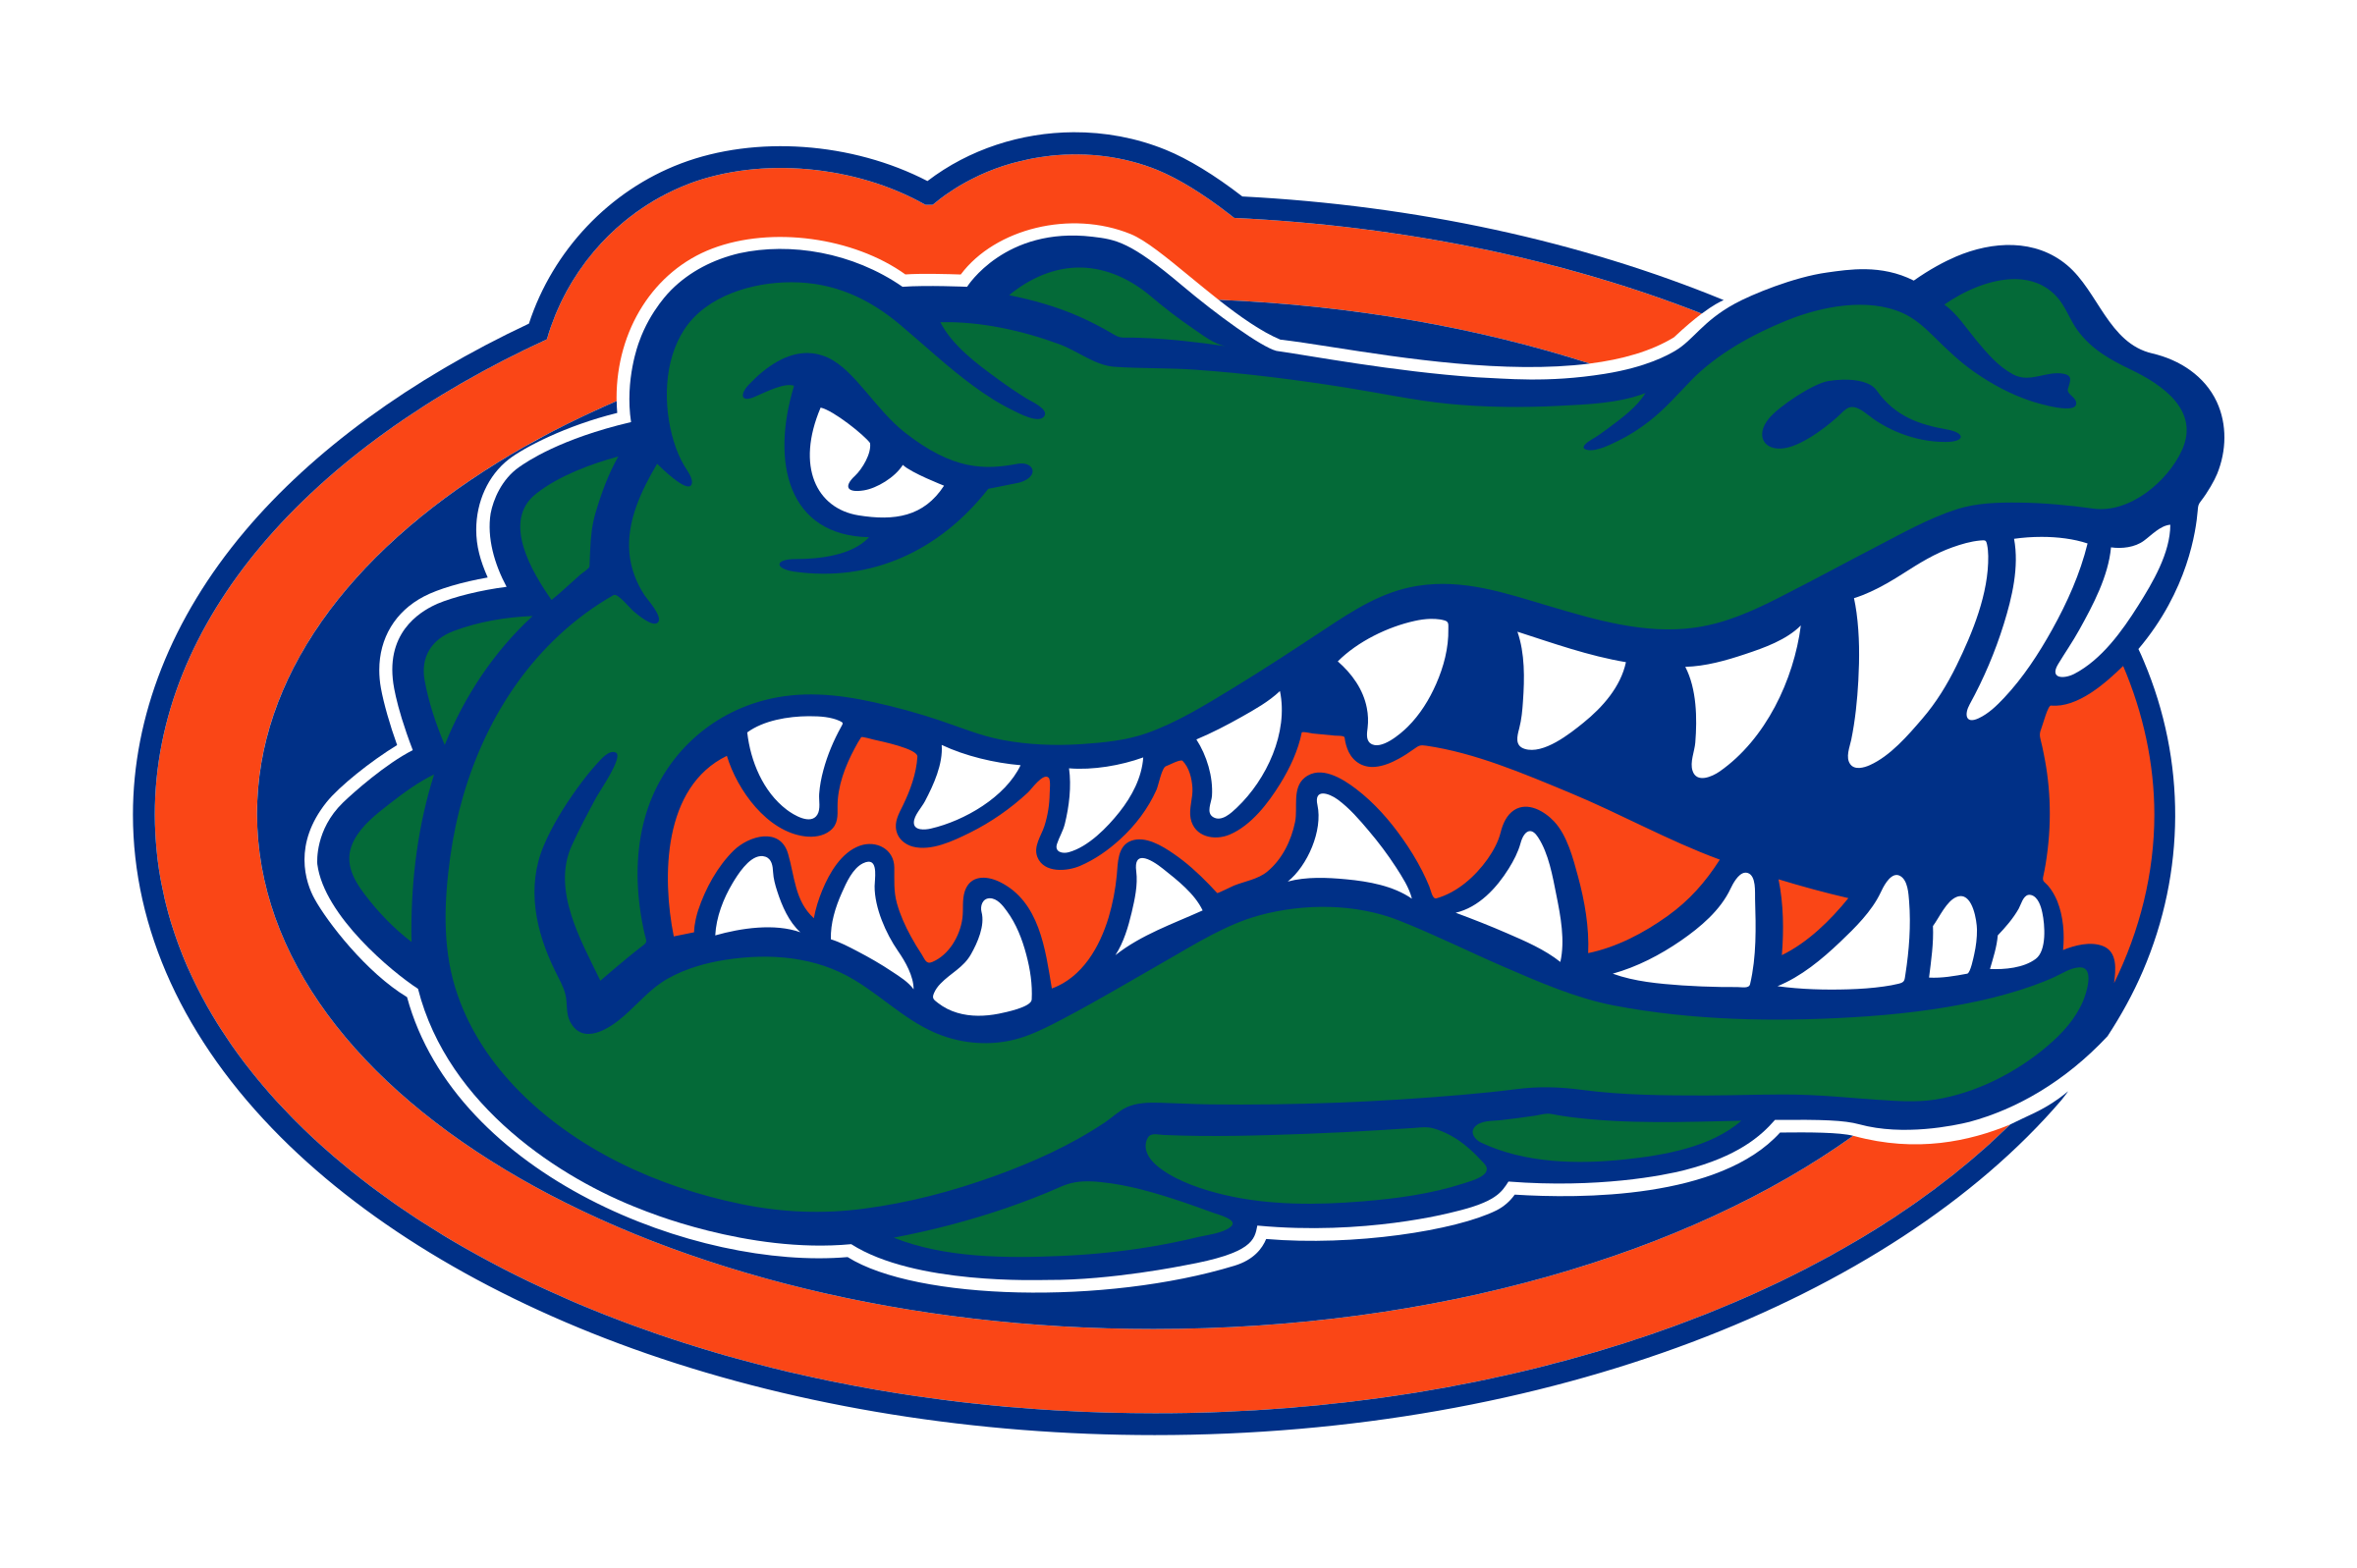 2400x1597 Florida Gators Logo Png Transparent Amp Svg Vector